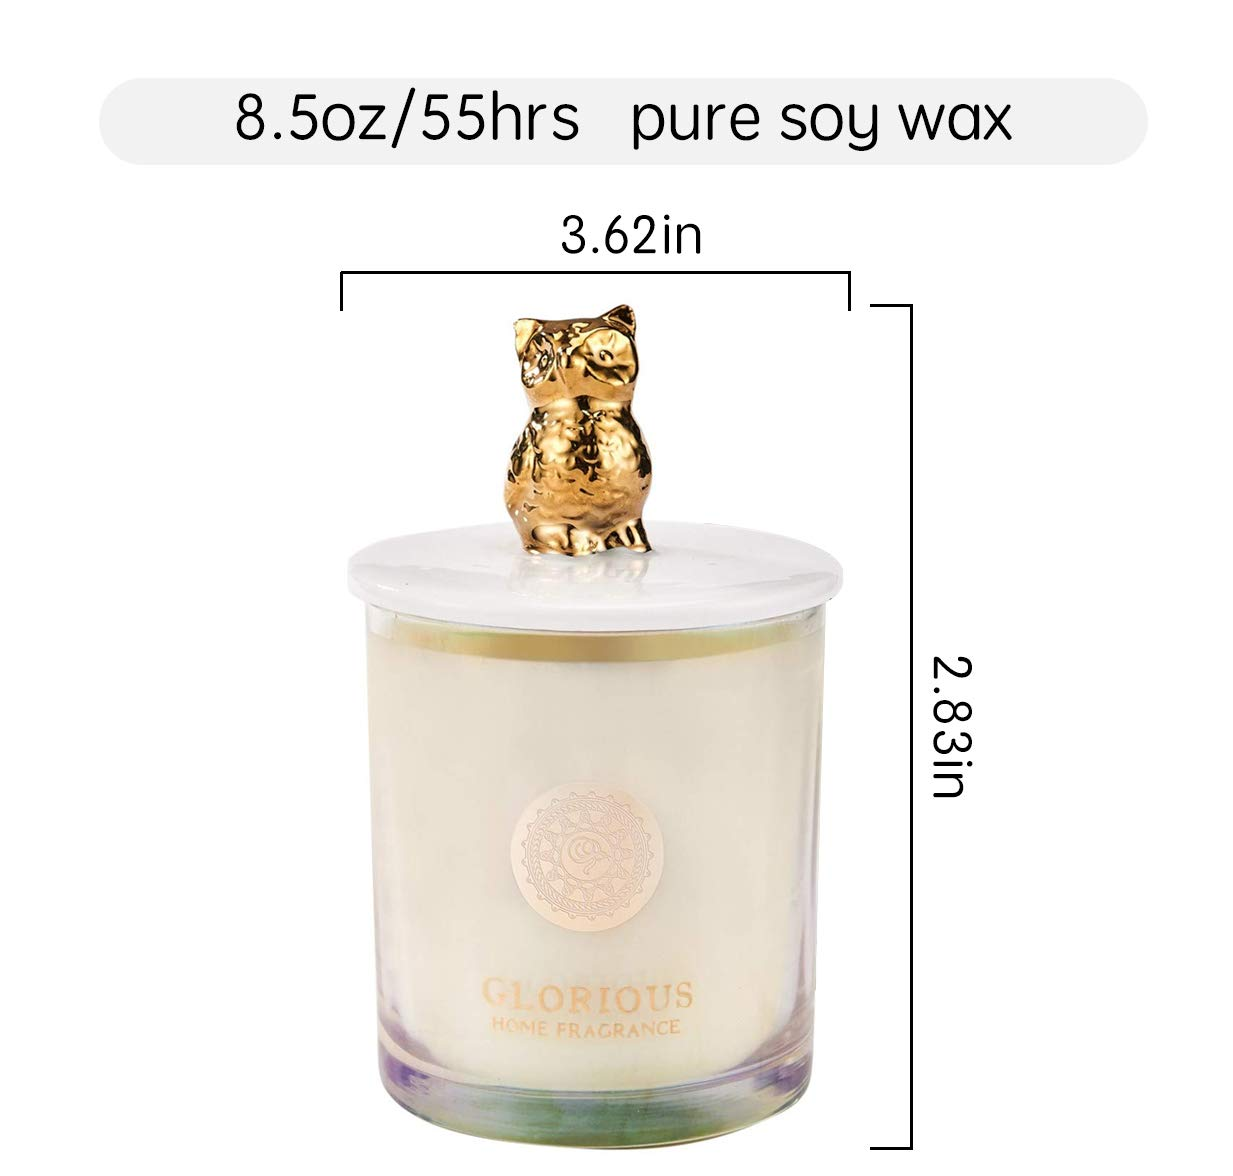 Scented Aromatherapy Candles Gift - Natural Soy Wax Sweet Pea & Lily Essential Oil Scented Candle,8.5 oz Cute Owl Decorative Glass Jar Candle, Mother's Day Candle Gift